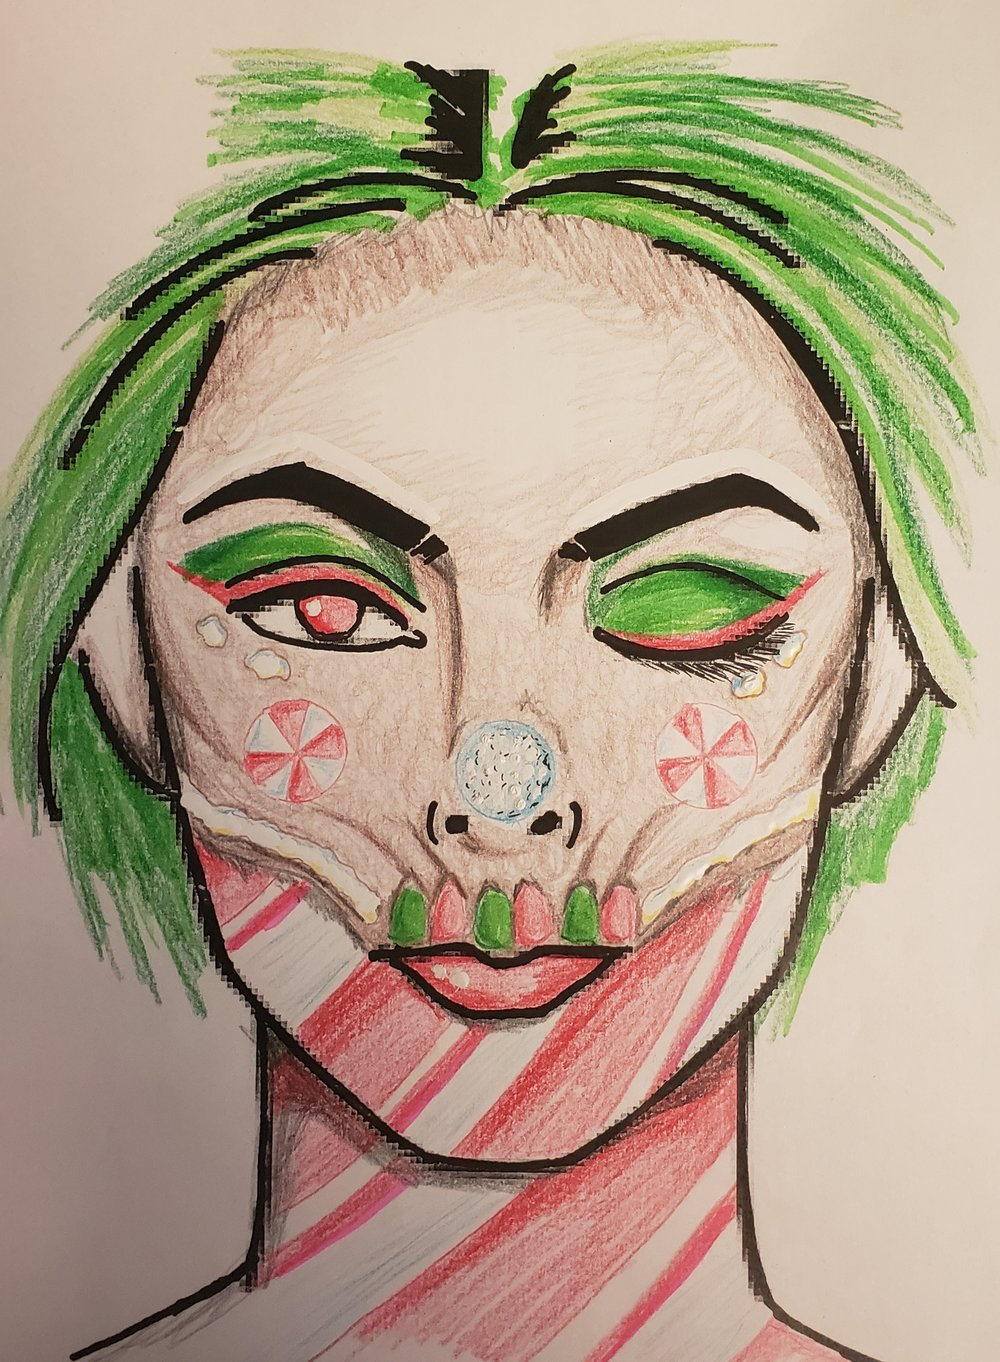 Rough Sketch of my Makeup